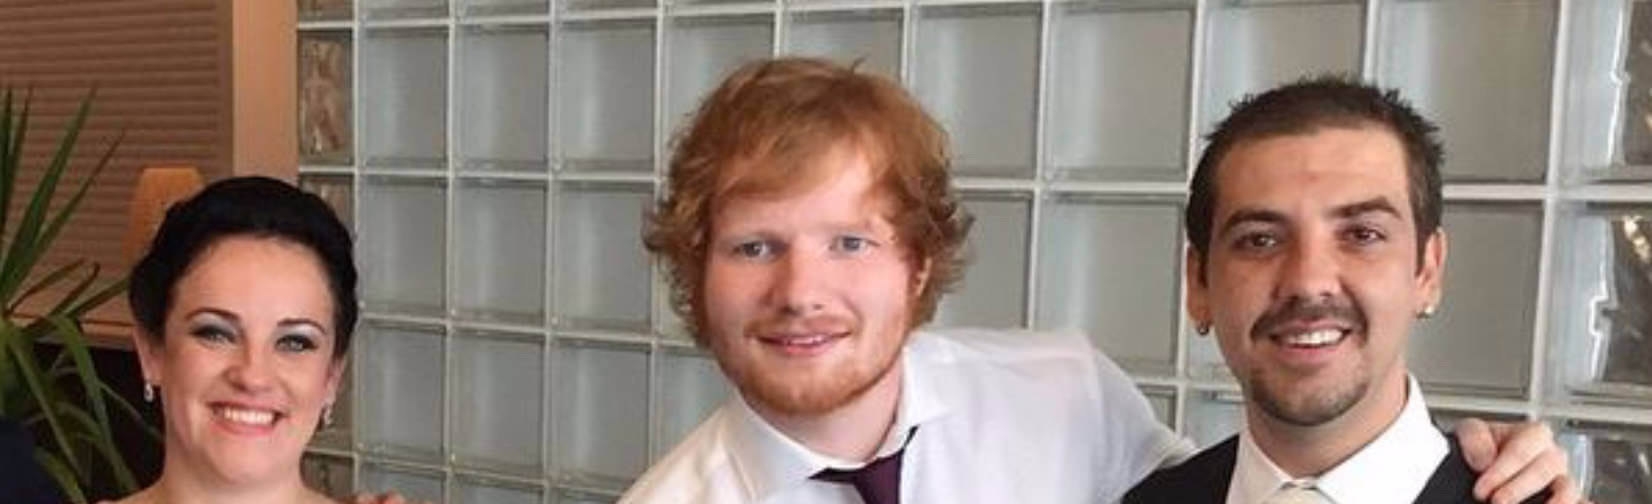 Ed Sheeran Sings at Wedding